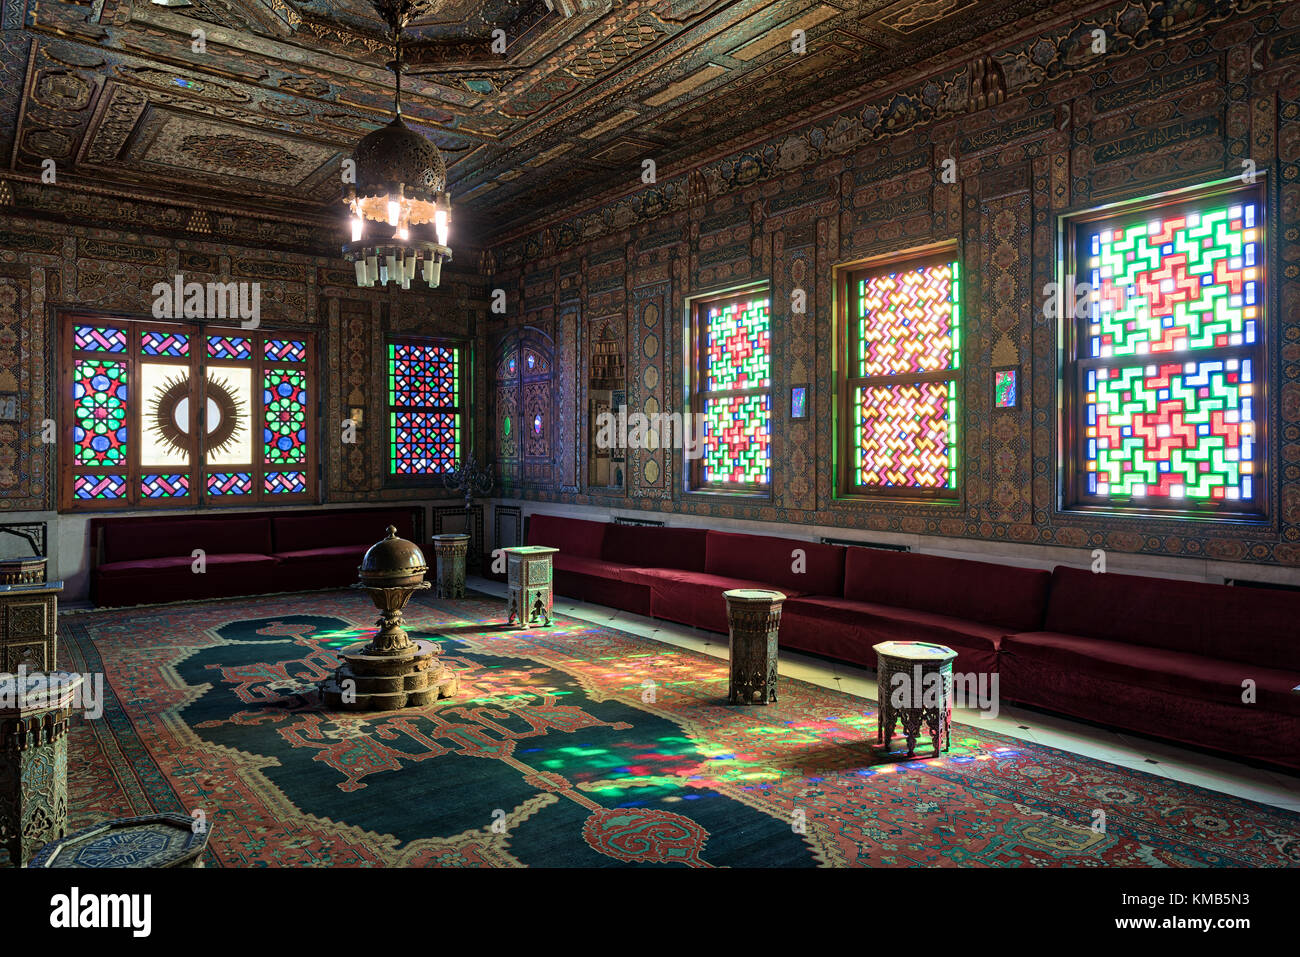 Cairo, Egypt - December 2 2017: Manial Palace of Prince Mohammed Ali. Syrian Hall with ornate wooden wall and ceiling, - Stock Image